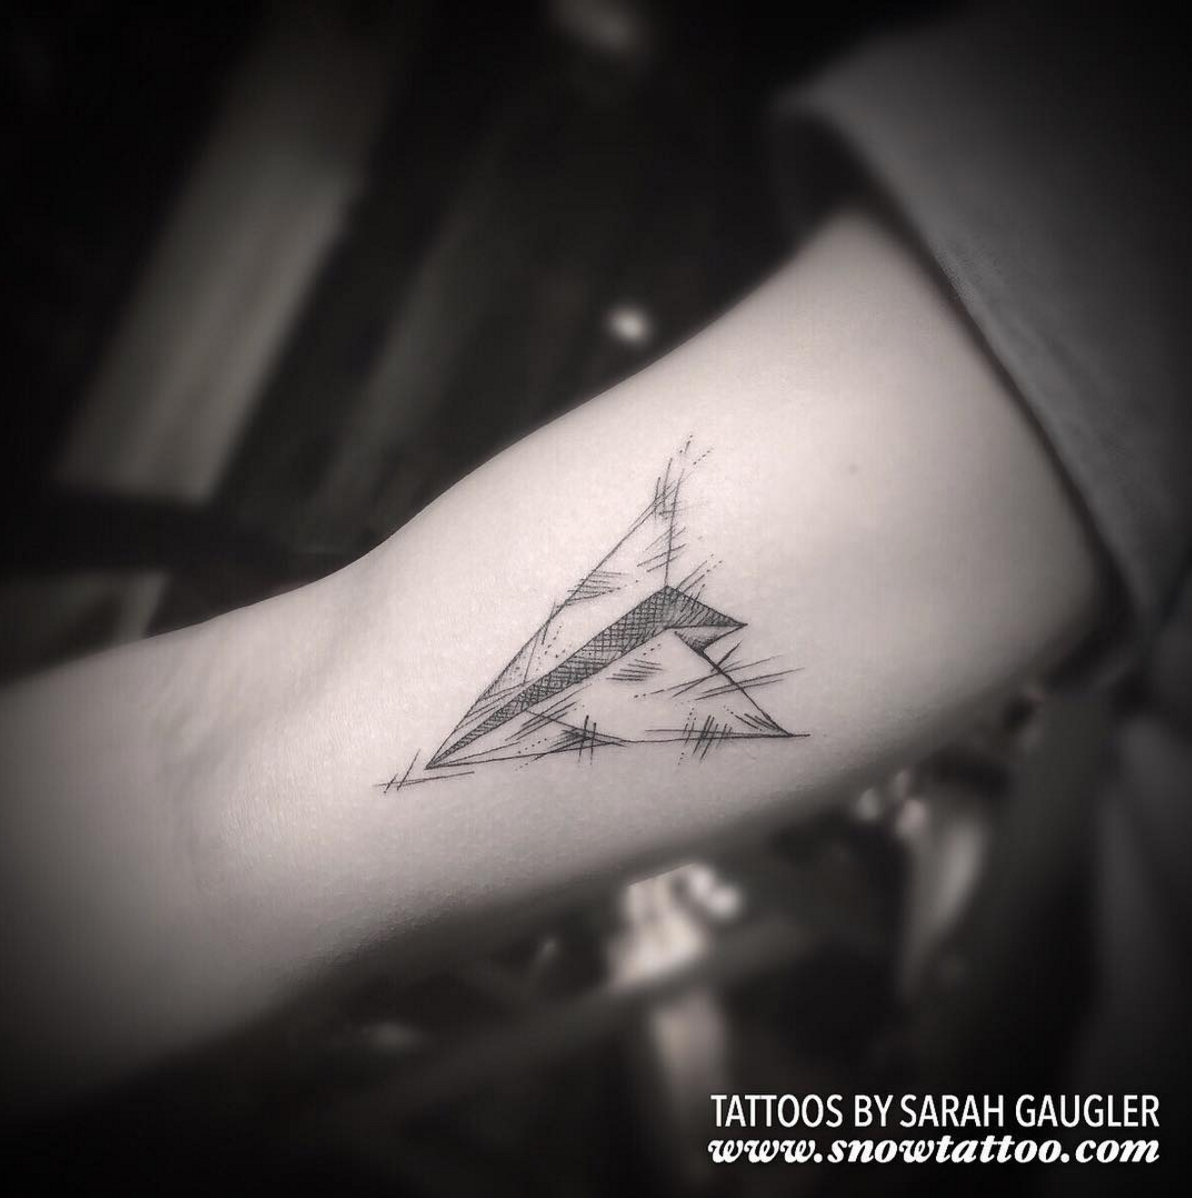 Sarah Gaugler Snow Tattoo Custom Paper Plane Detailed Intricate LineWork BlackWork Fine Line FineLinetattoo New York Best Tattoos Best Tattoo Artist NYC.png